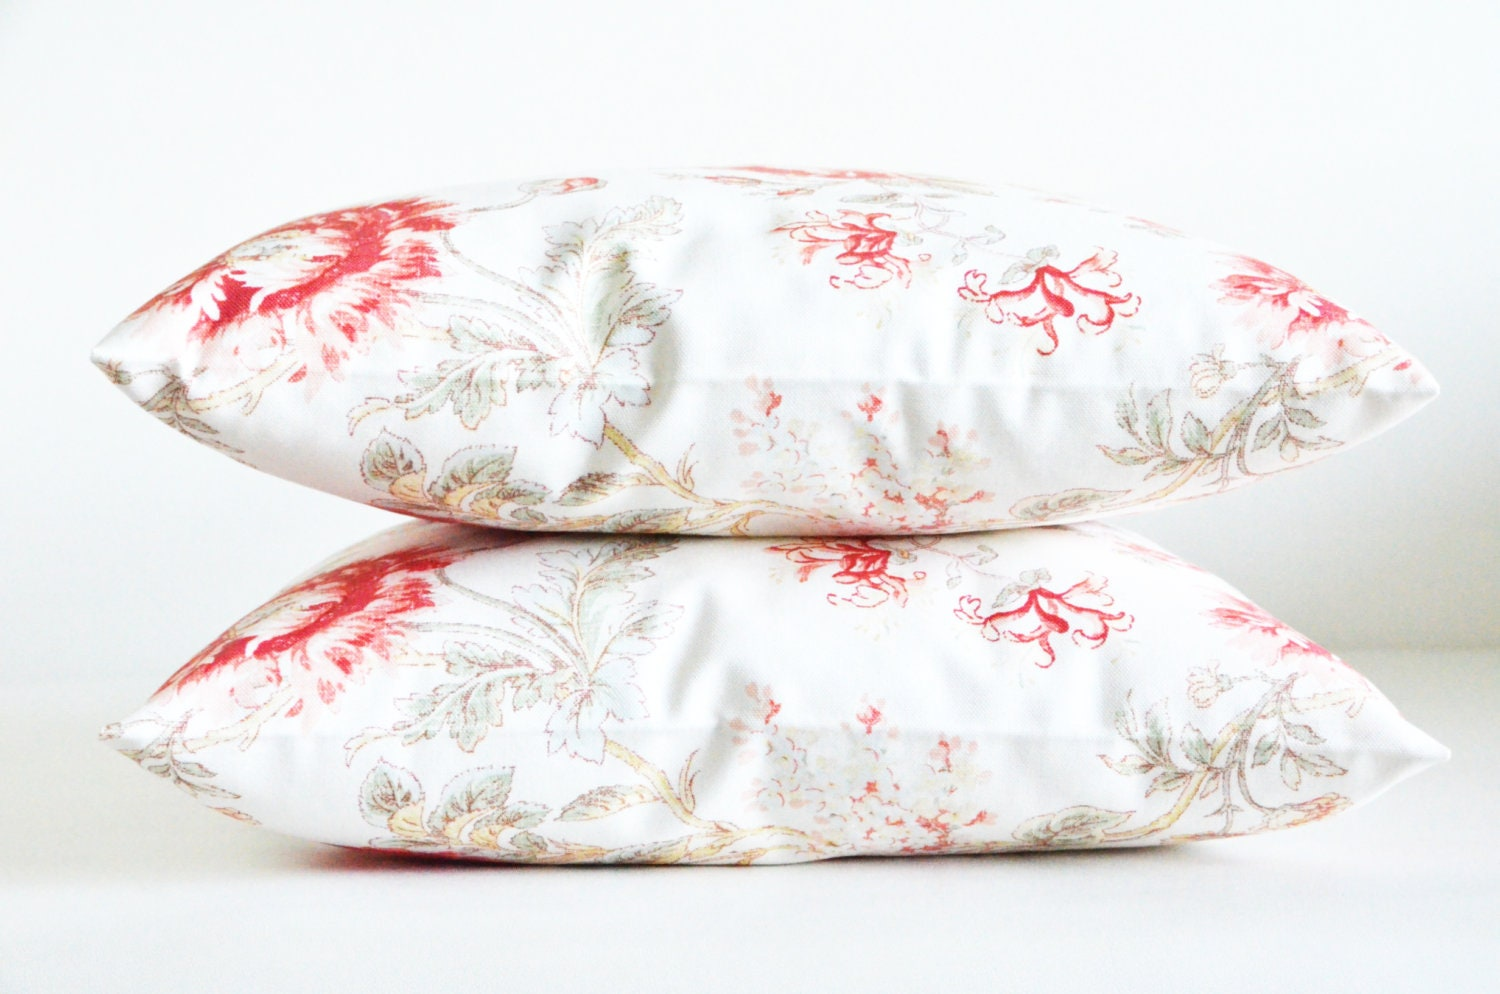 cotton floral lace pillows white red rose decorative modern patterned flowering roses garden home bedroom decor 18x18 inches pillows - sestras